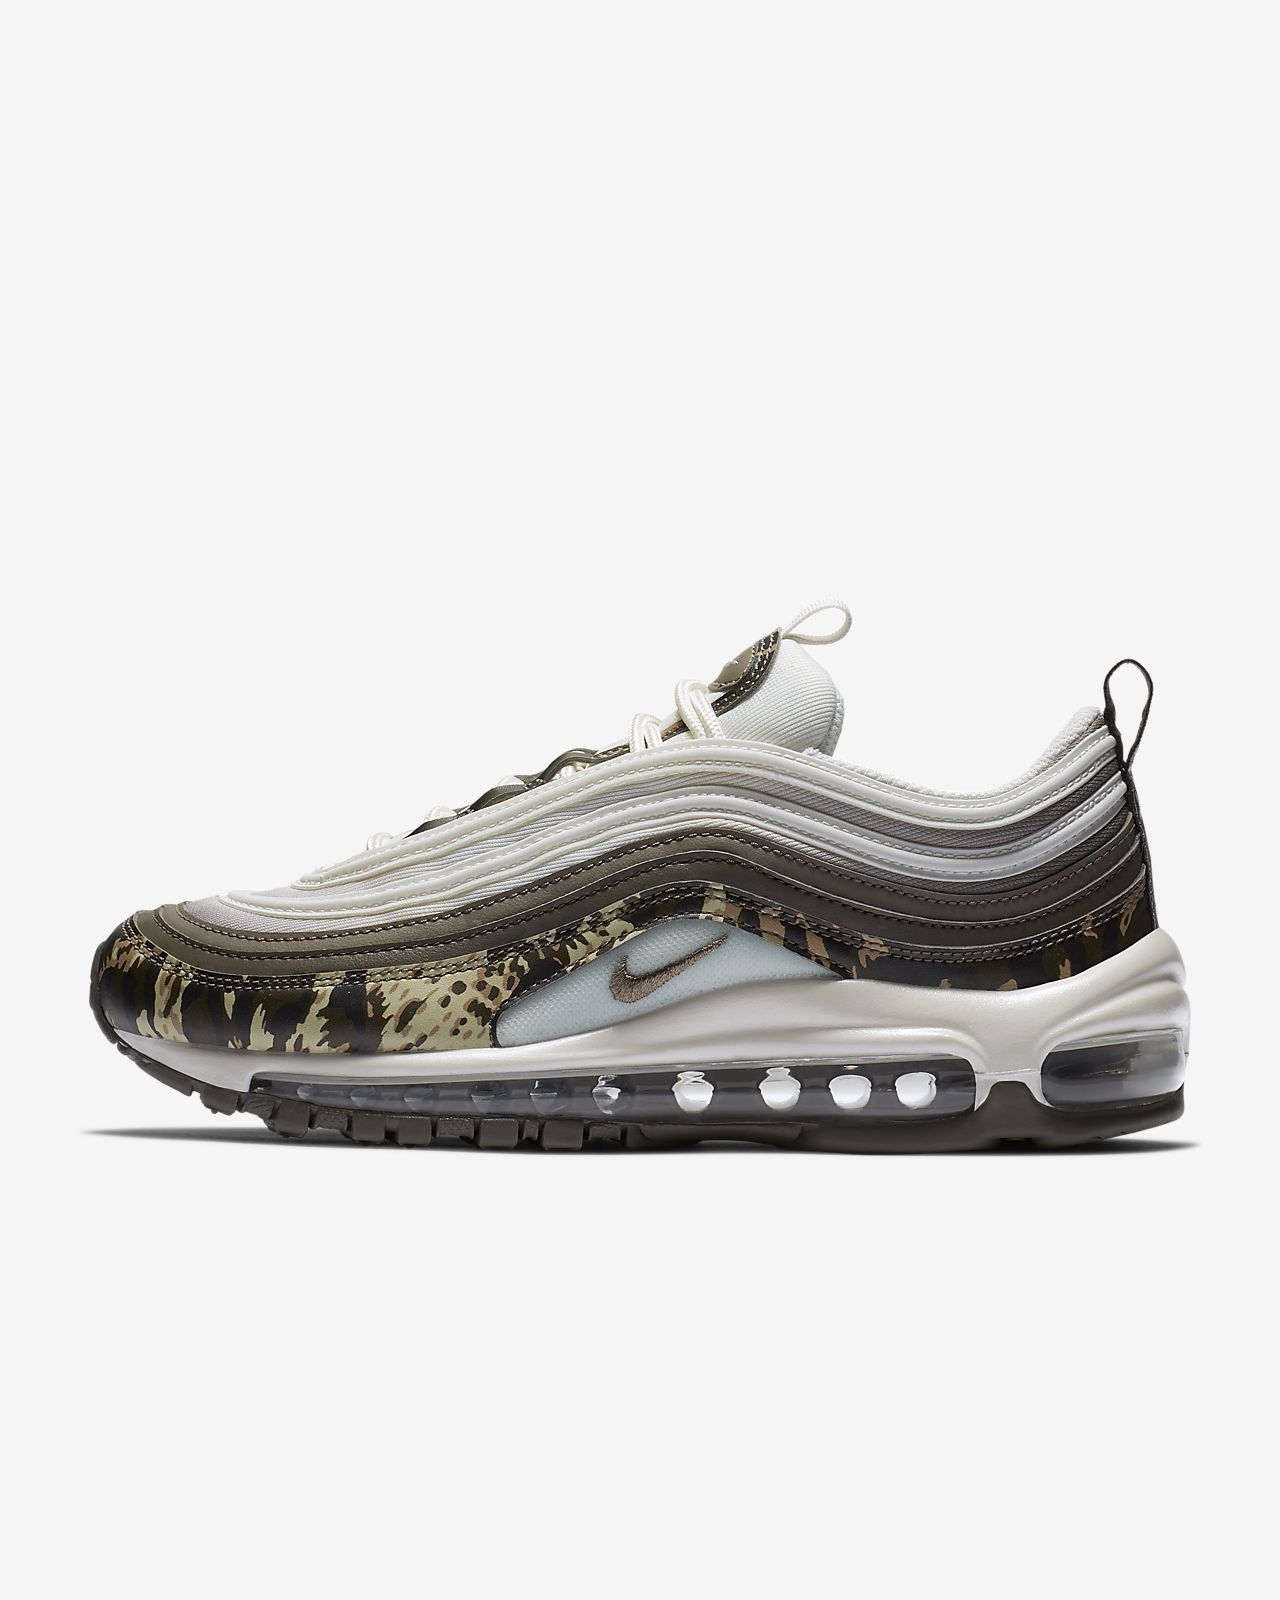 best sneakers 42bac 0cba6 italy chaussure nike air max 97 premium animal camo pour femme 789db 01bdf